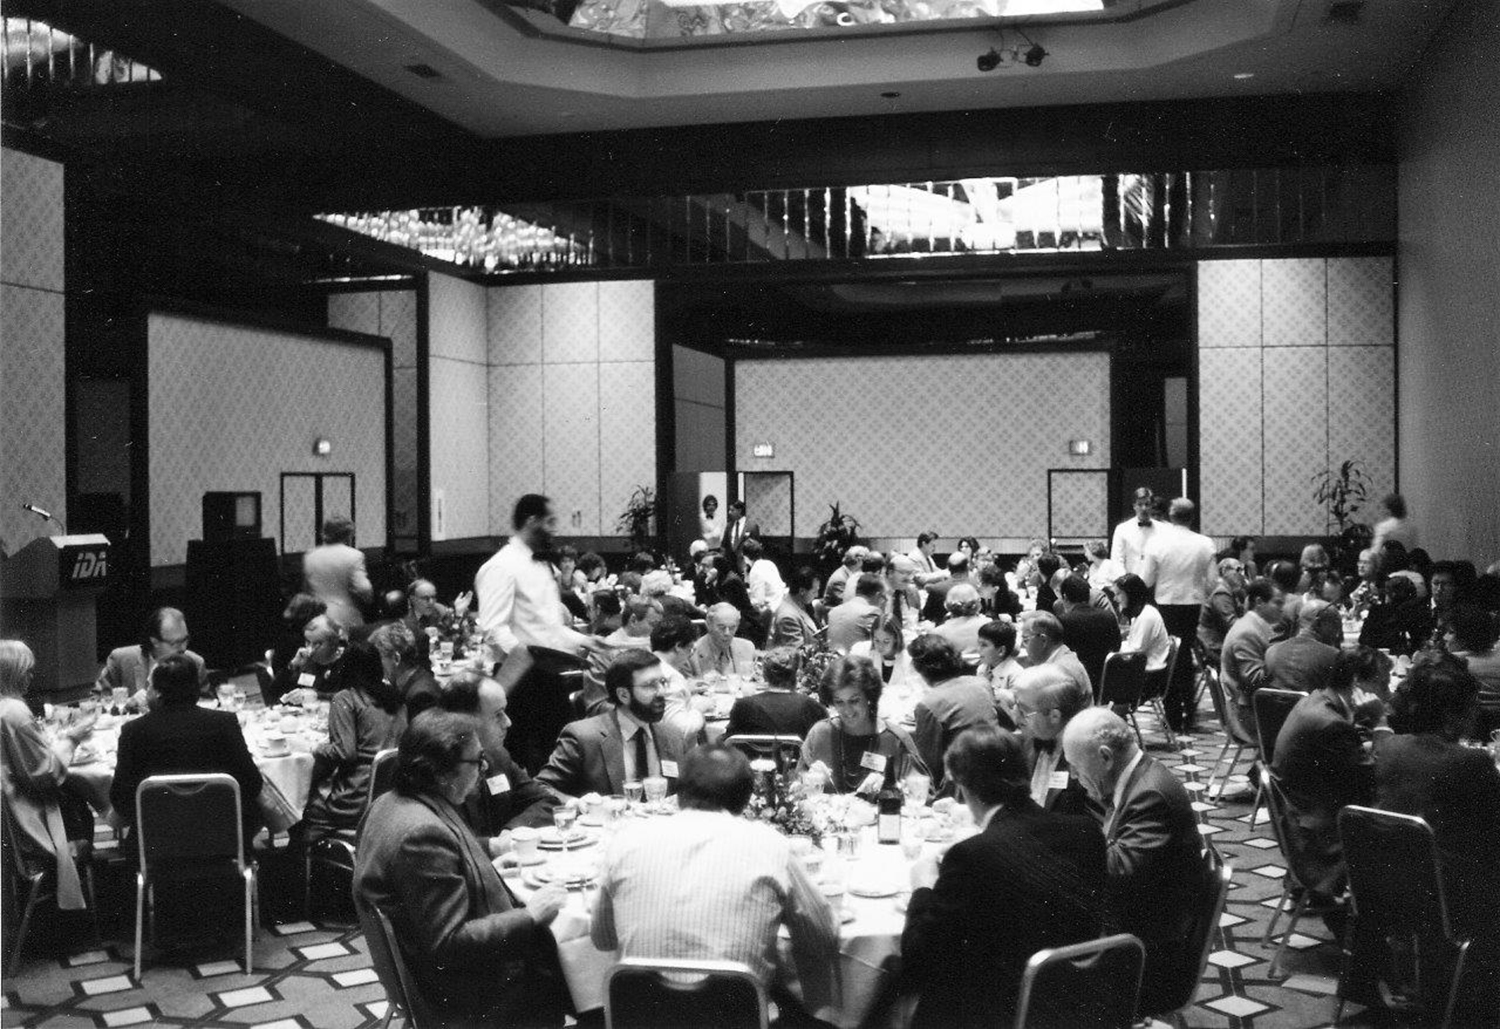 The inaugural IDA Documentary Awards luncheon at the Sheraton Premiere hotel in Universal City, Calif., in November 1985